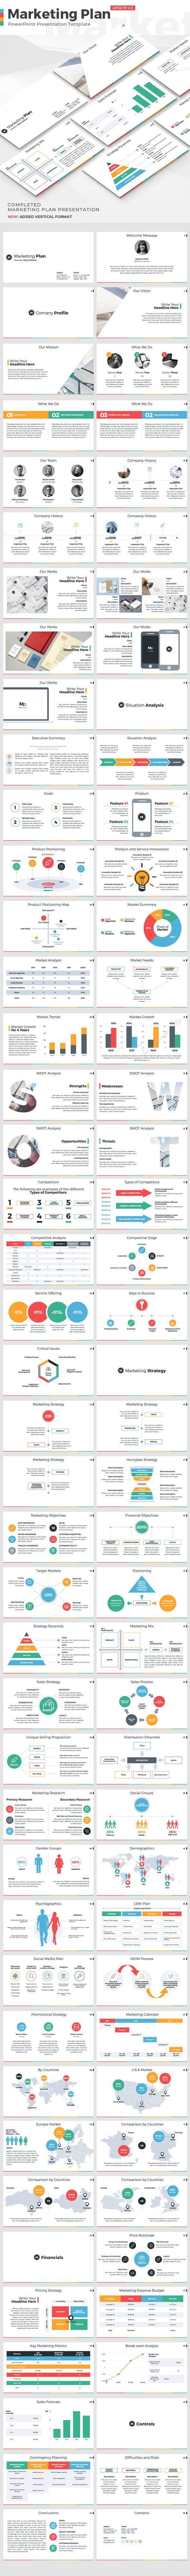 marketing plan powerpoint presentation template by jetz graphicriver